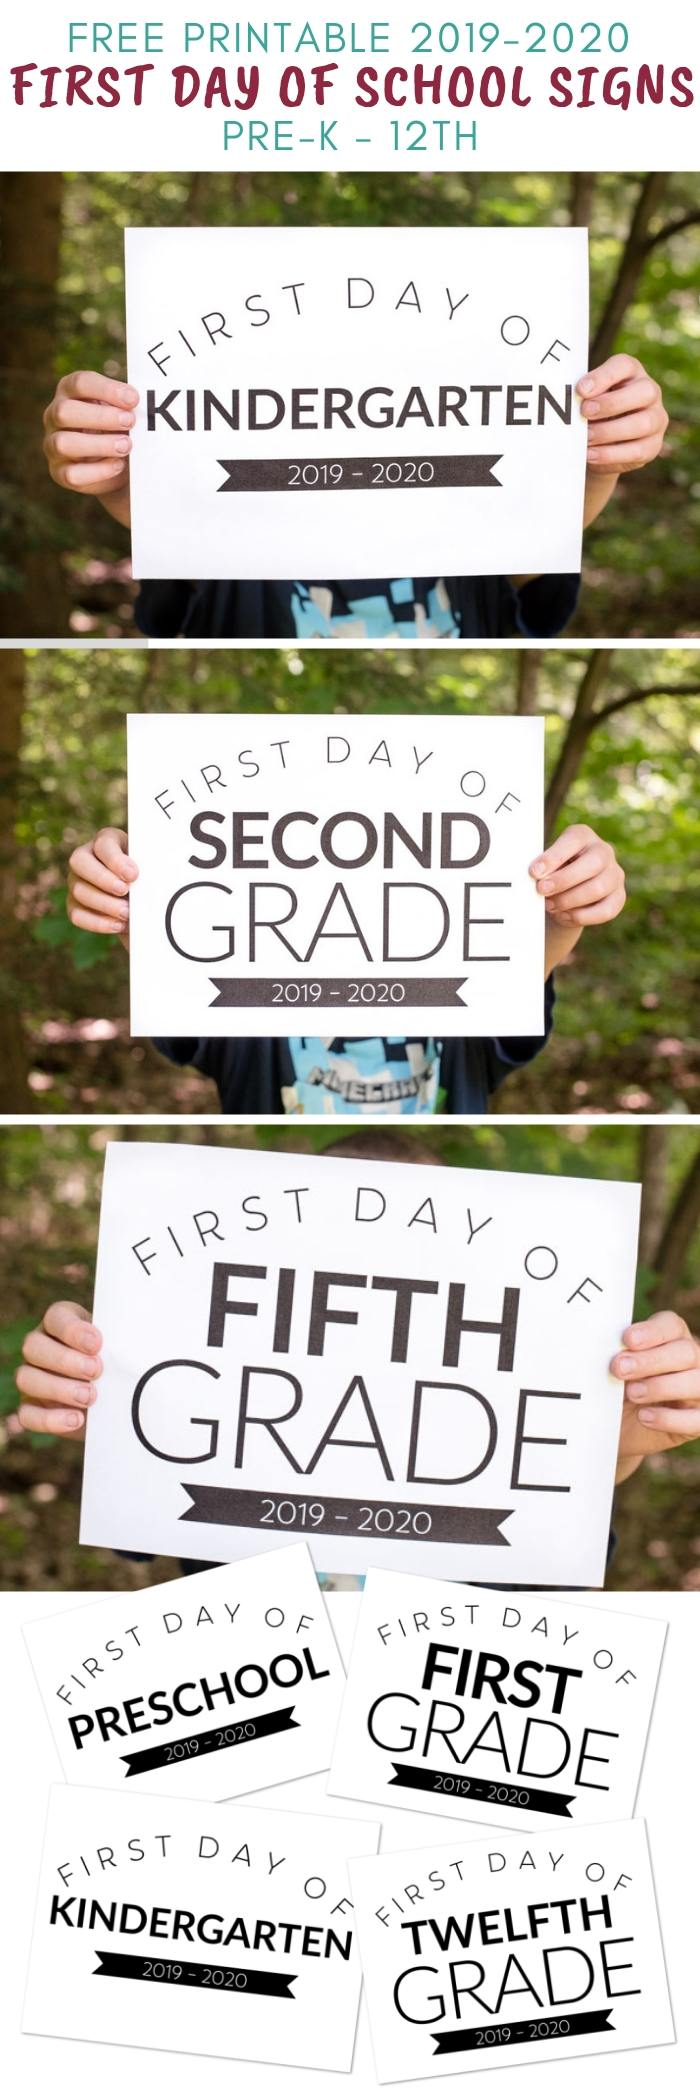 graphic about Printable First Day of School Signs titled Totally free Printable Initial Working day of College or university Indications for All Grades